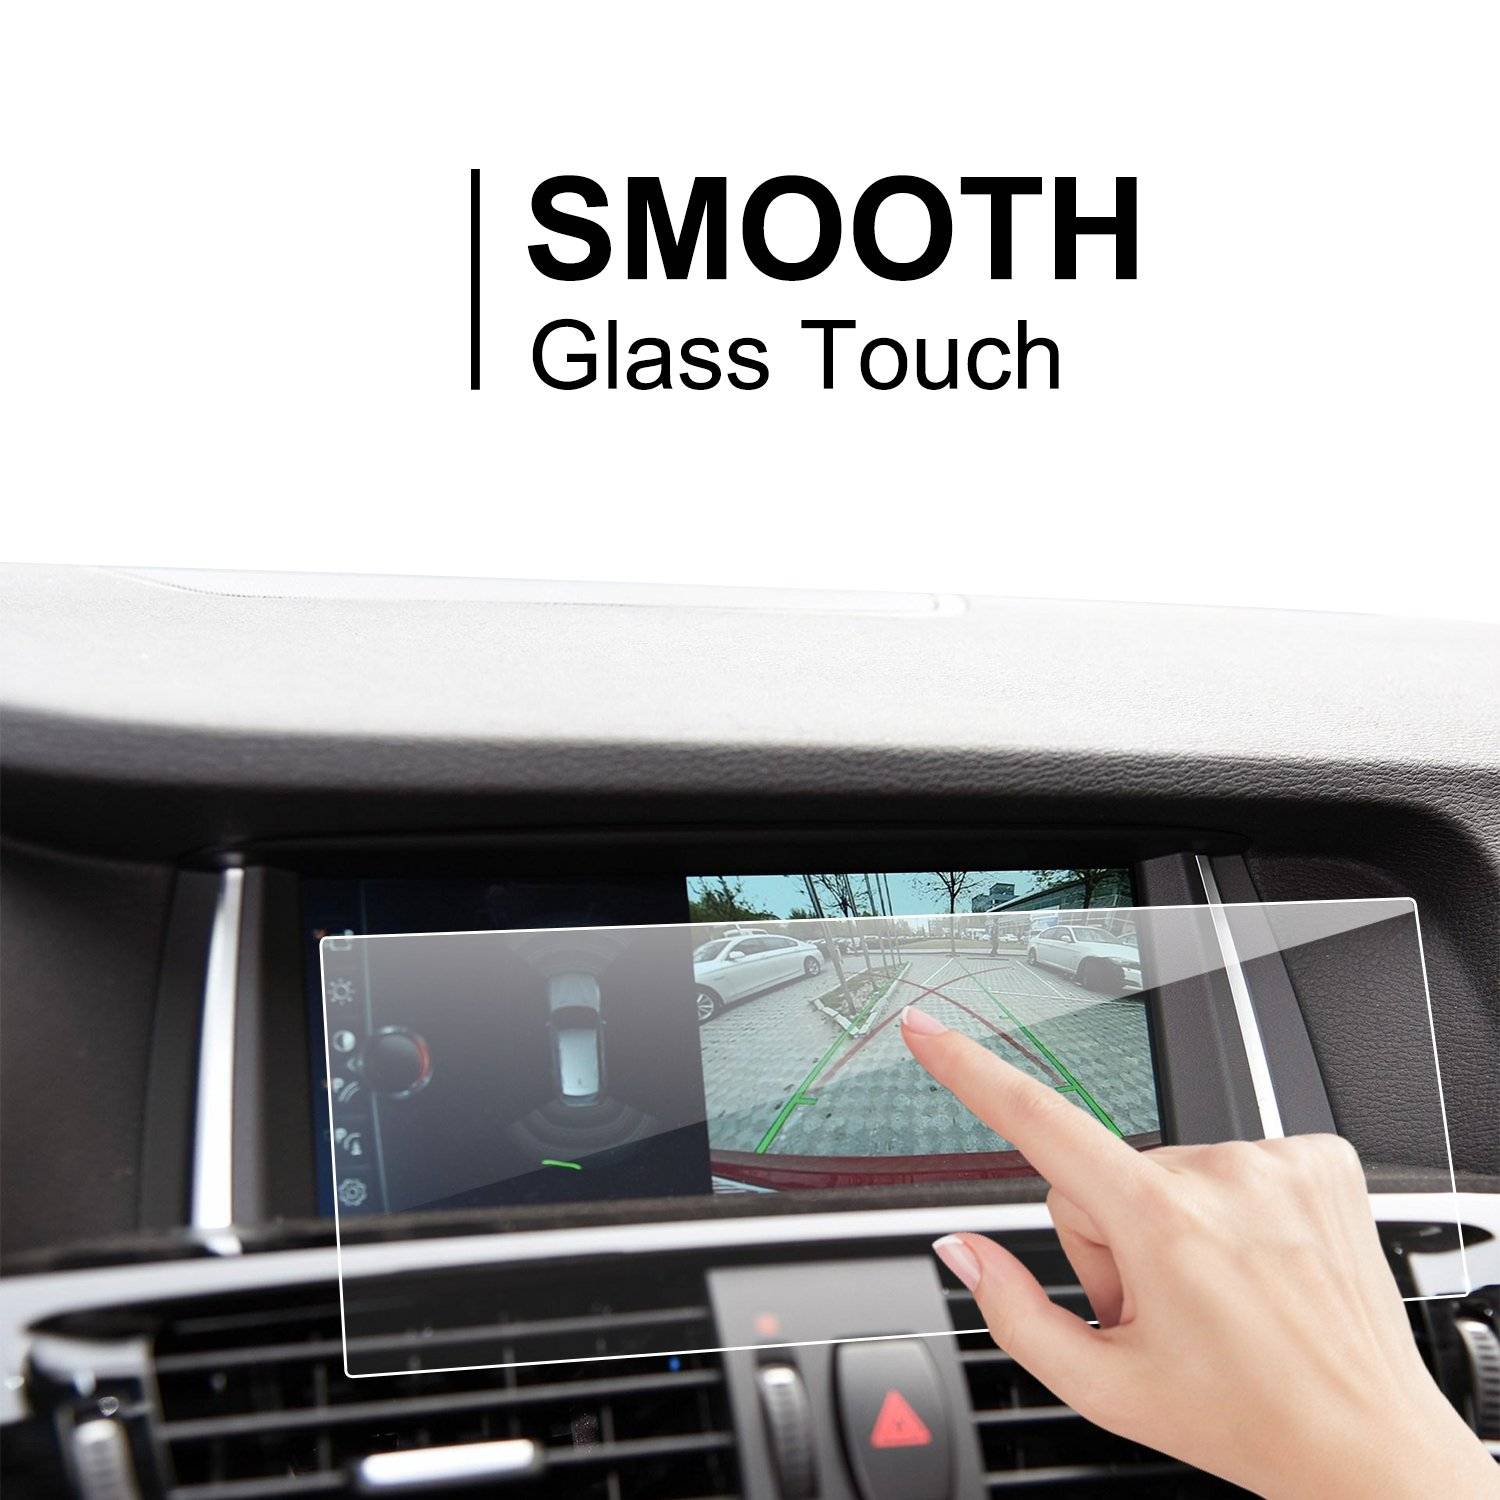 If Applicable/  LiFan 4347653166 LFOTPP Compatible Tempered Glass Navigation Infotainment Center Touch Screen Protector Replacement for BMW X1 X3 X4 X5 X6/ M40i 8.8-Inch Screen